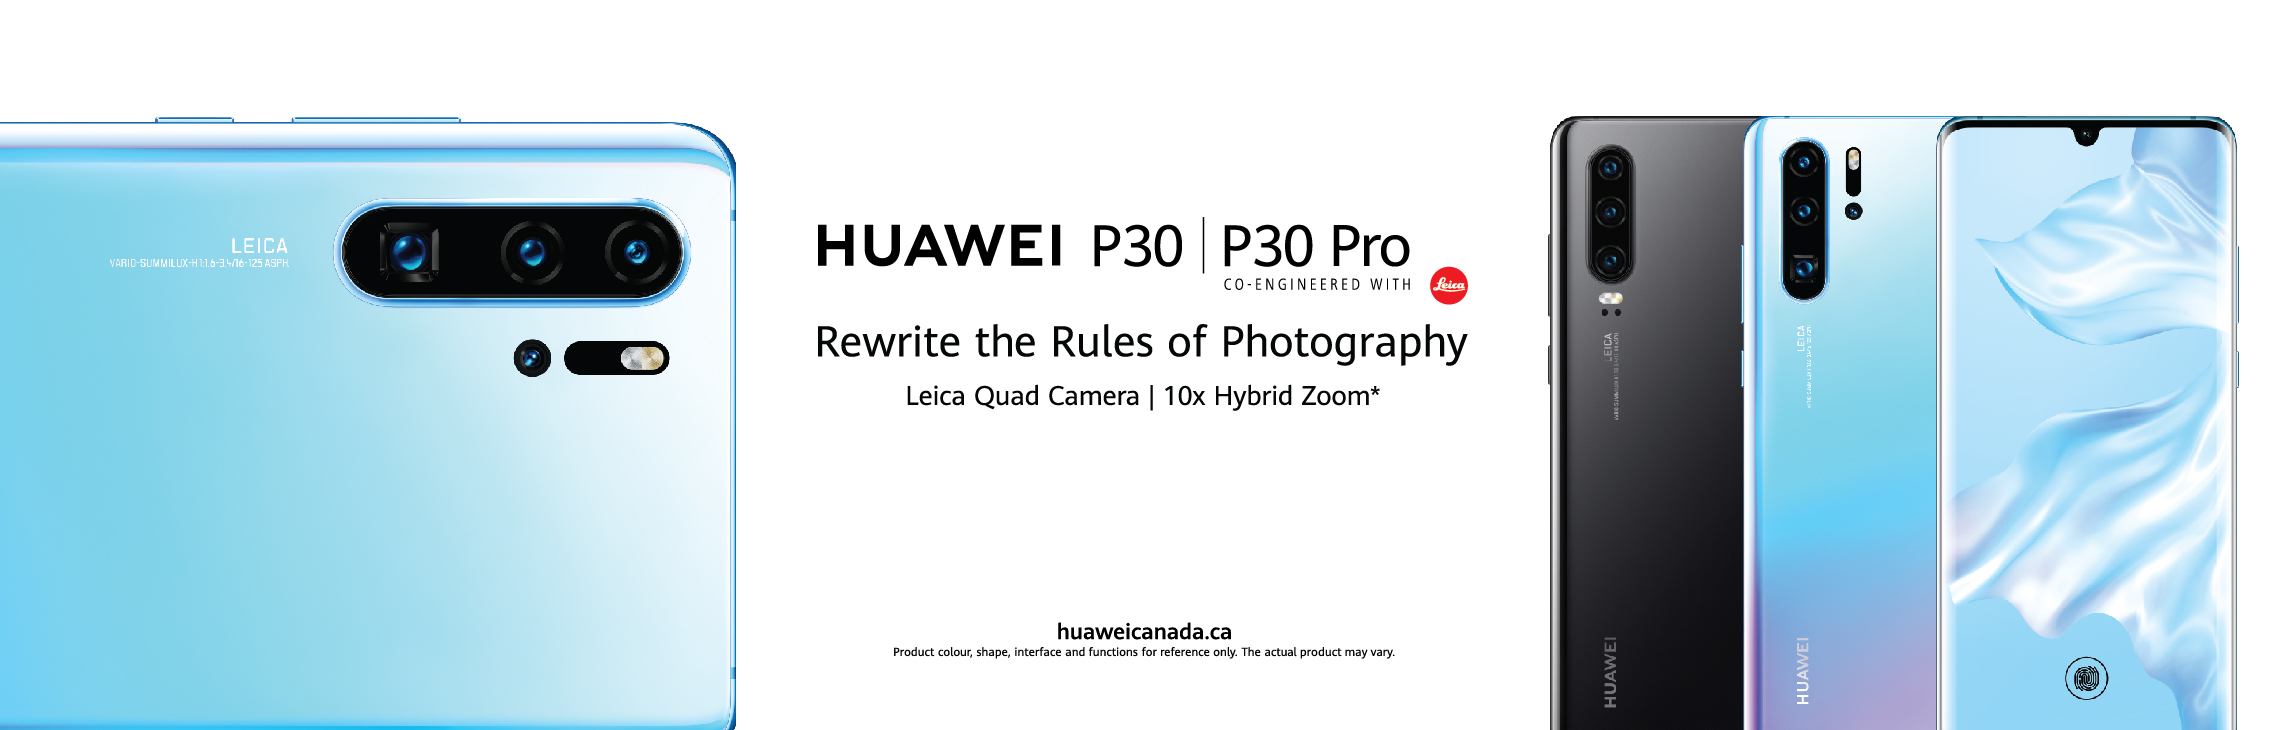 Rewrite the Rules of Photography